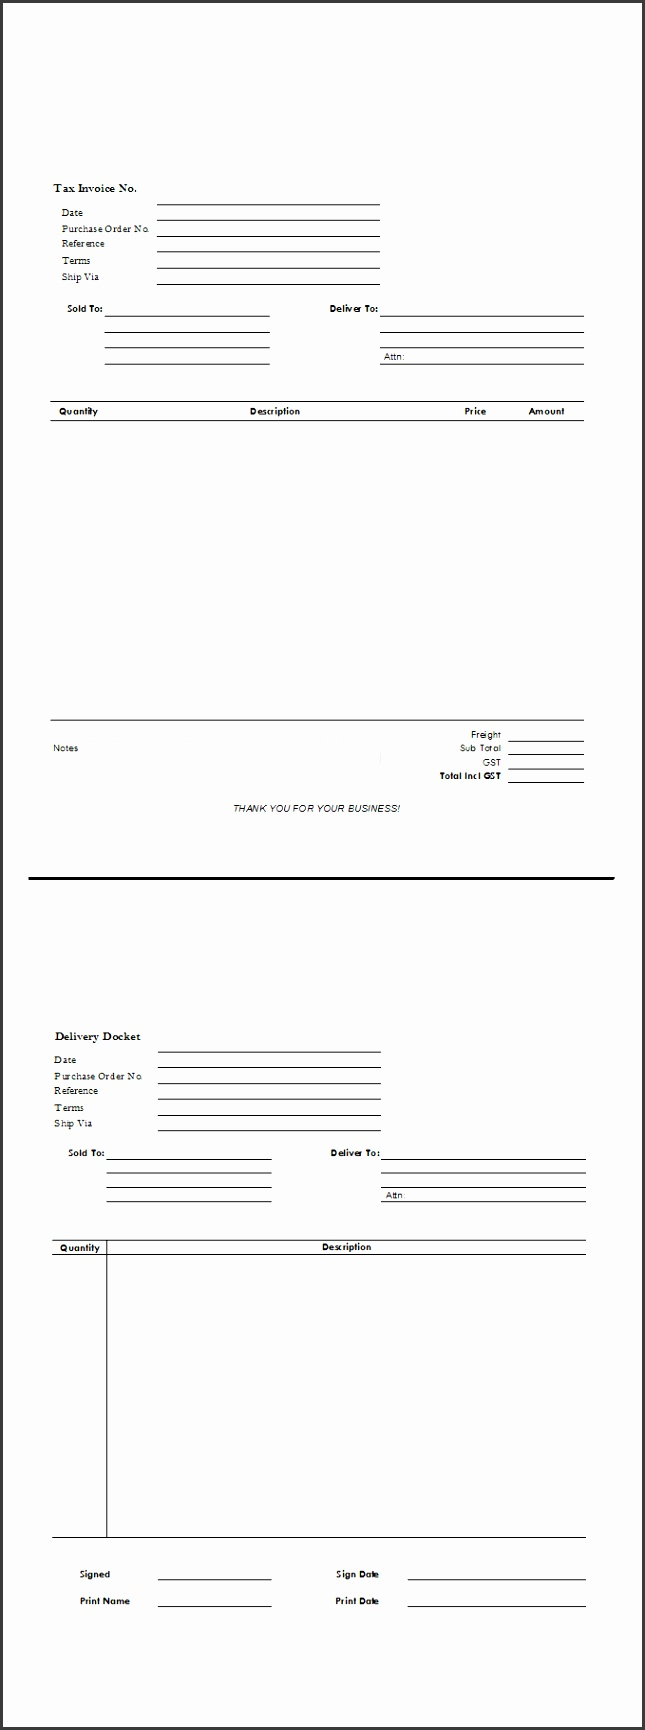 Invoice and Packing Slip on Same Form